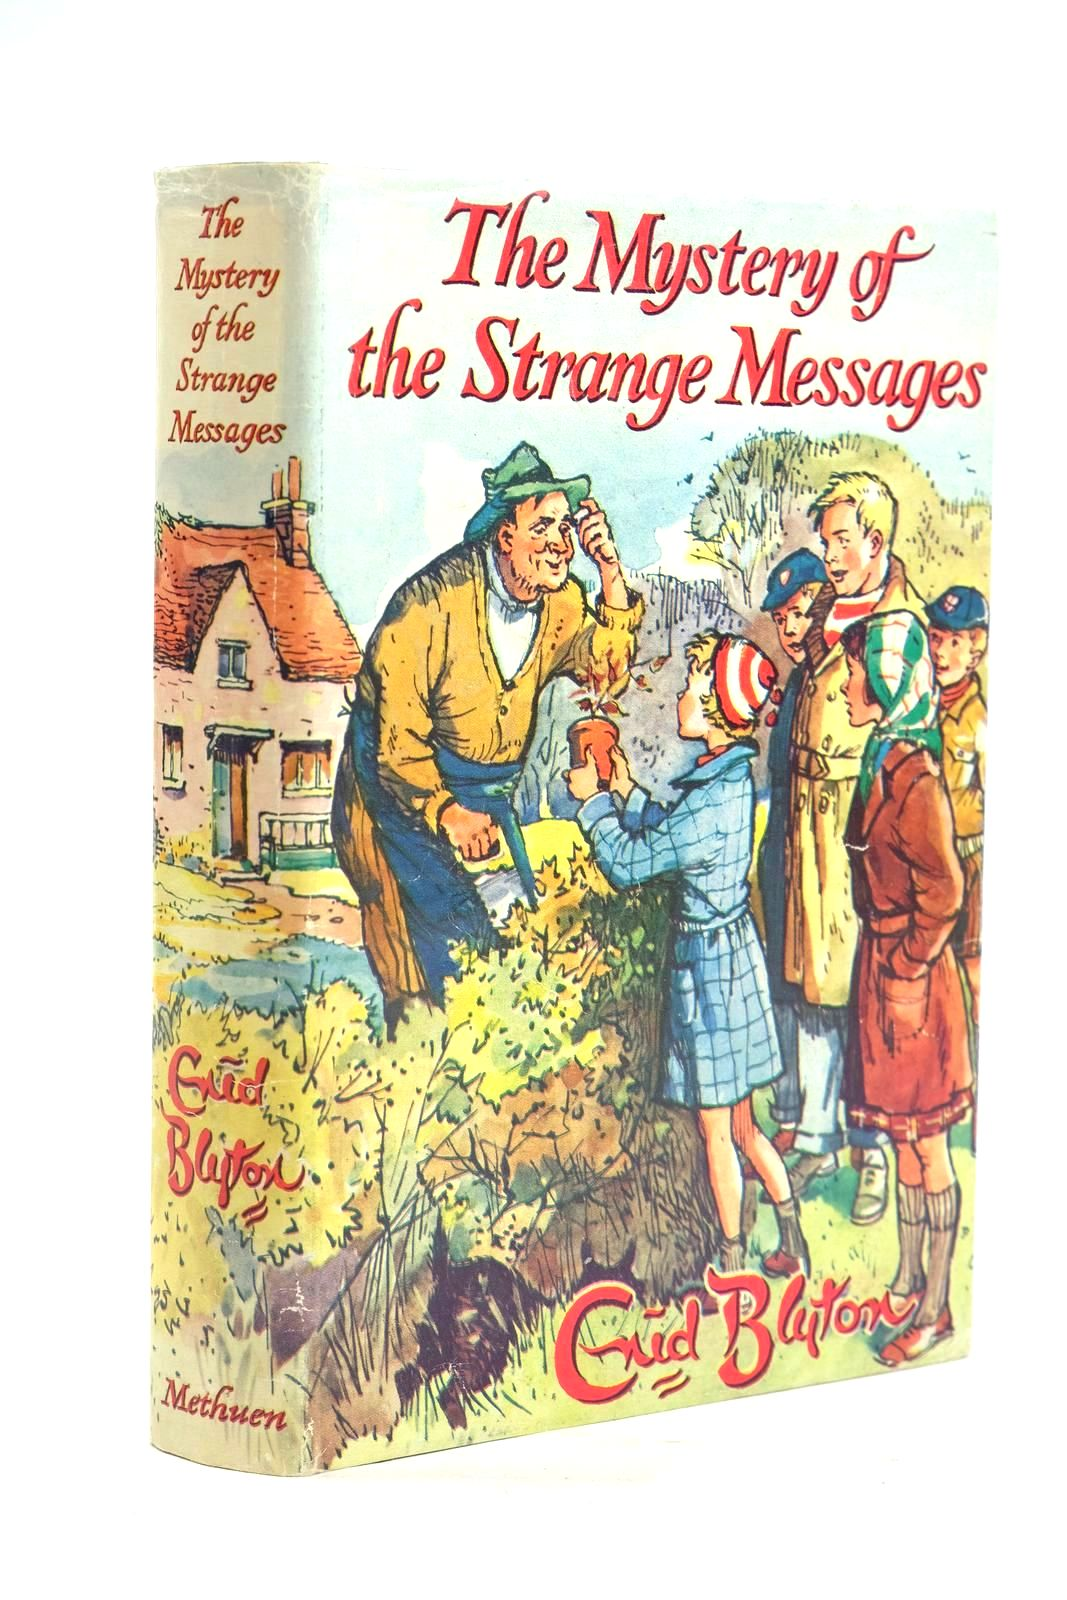 Photo of THE MYSTERY OF THE STRANGE MESSAGES written by Blyton, Enid illustrated by Buchanan, Lilian published by Methuen & Co. Ltd. (STOCK CODE: 1319773)  for sale by Stella & Rose's Books